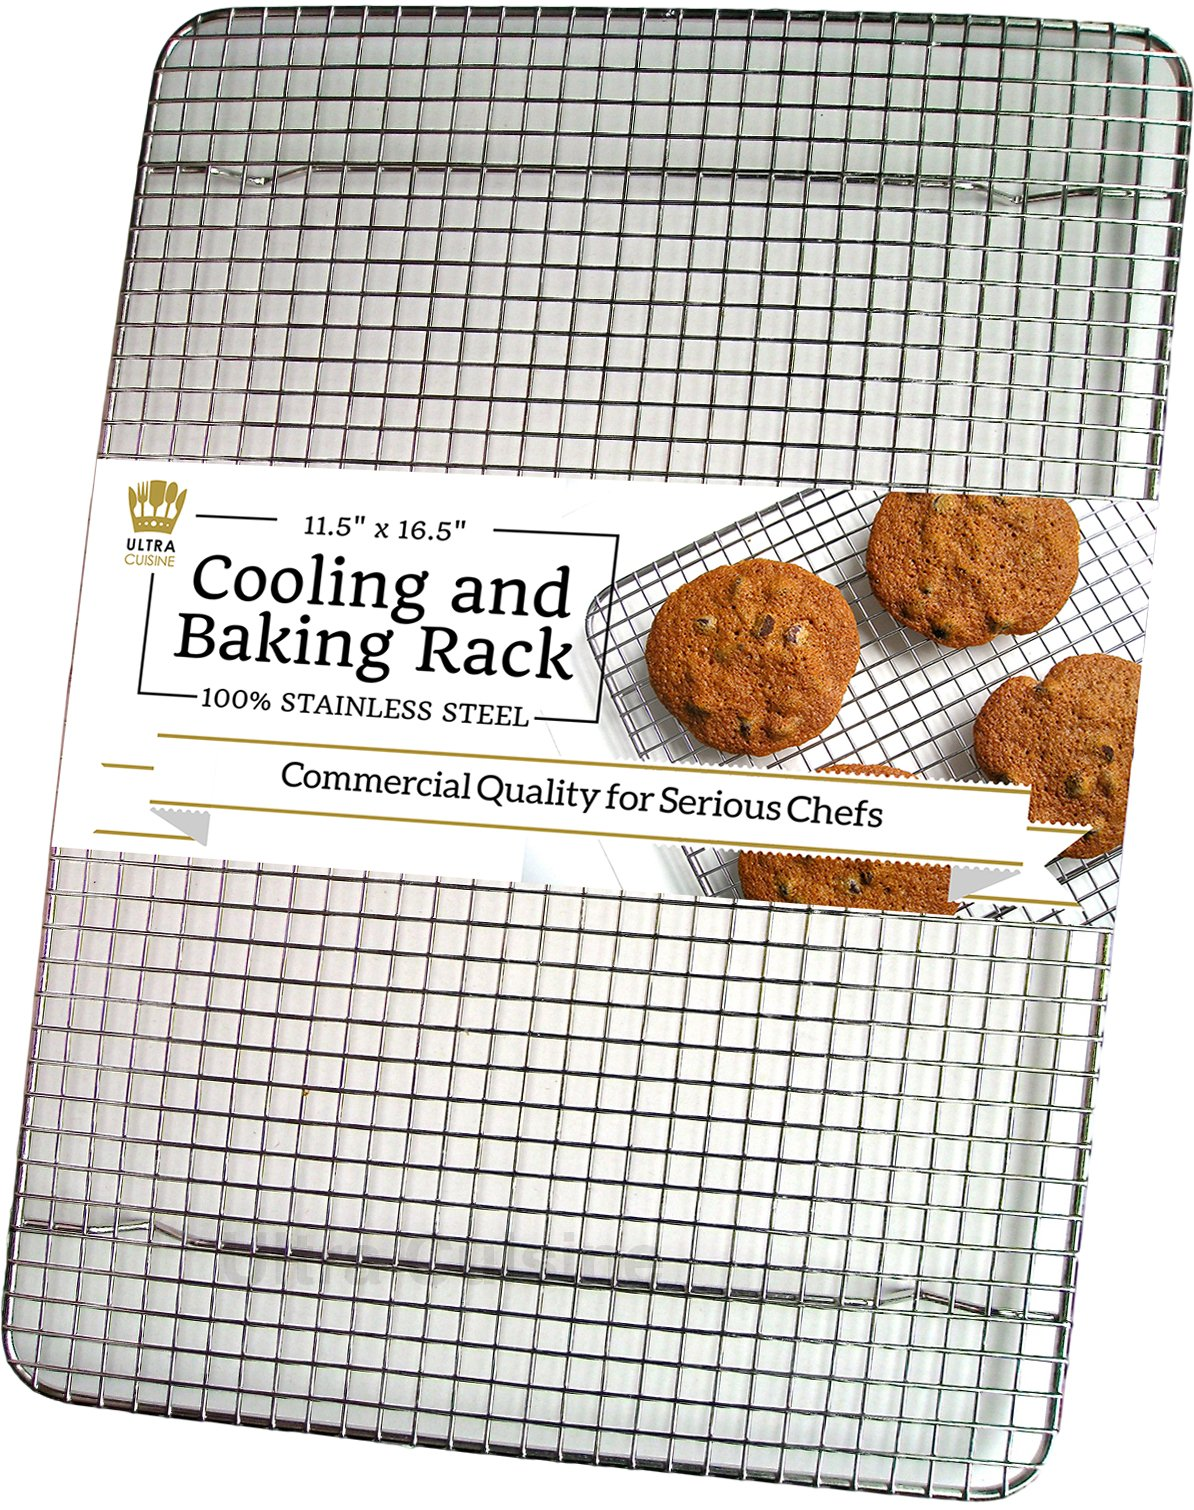 Ultra Cuisine 100% Stainless Steel Wire Cooling Rack for Baking fits Half Sheet Pans Cool Cookies, Cakes, Breads - Oven Safe for Cooking, Roasting, Grilling - Heavy Duty Commercial Quality by Ultra Cuisine